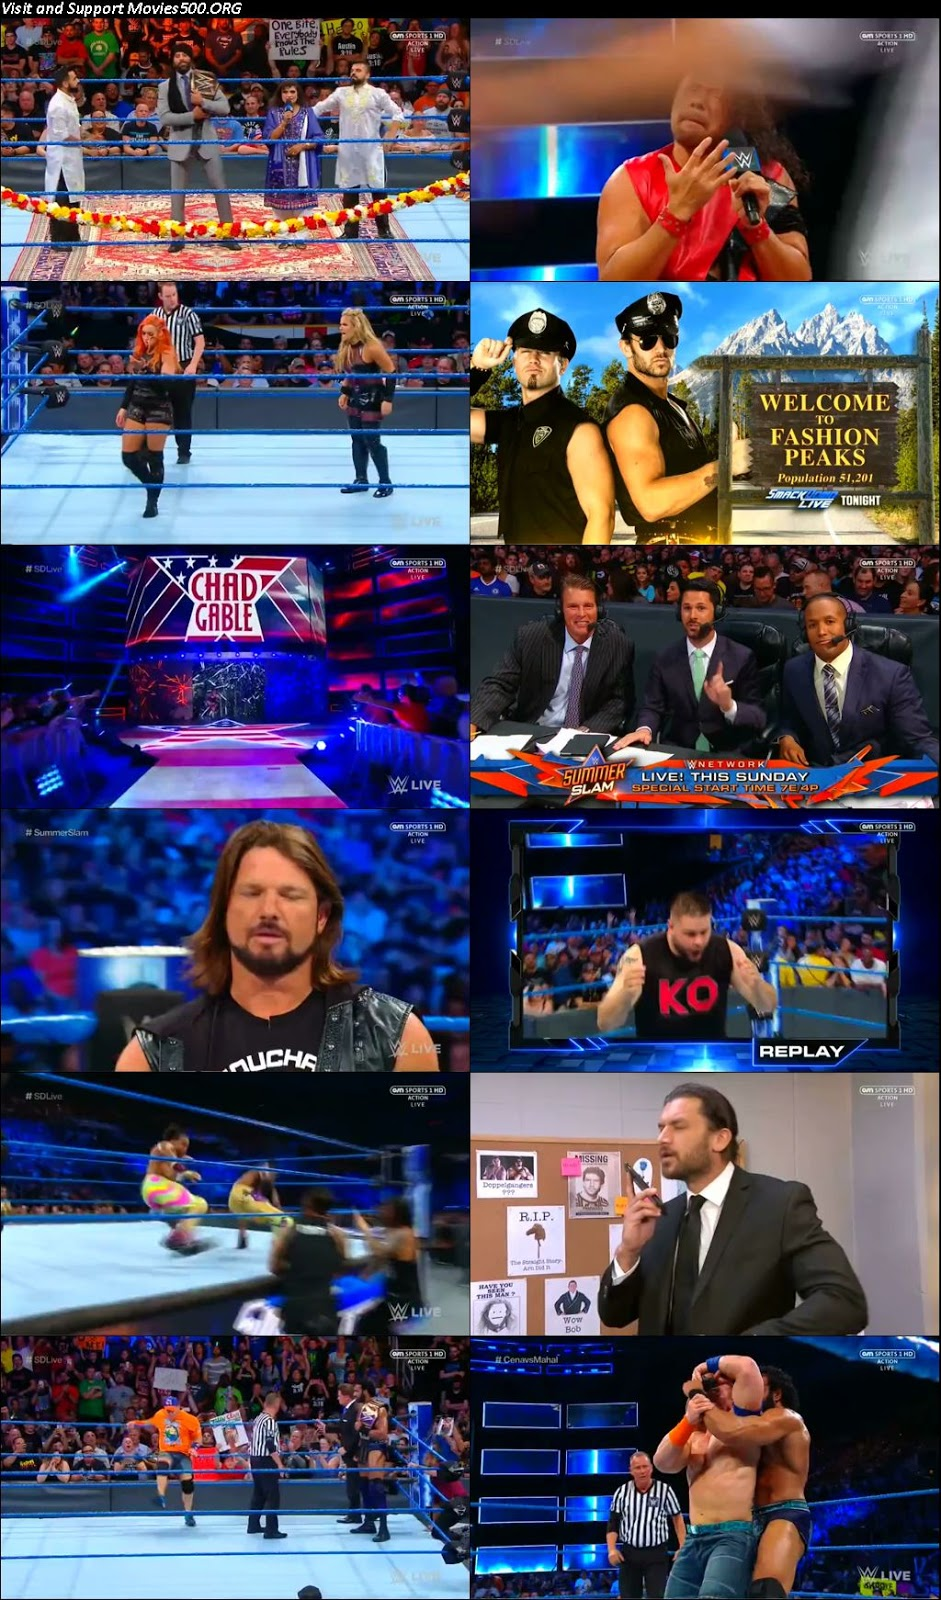 WWE Smackdown Live 15 Aug 2017 HDTV Full Show Download 720p at createkits.com